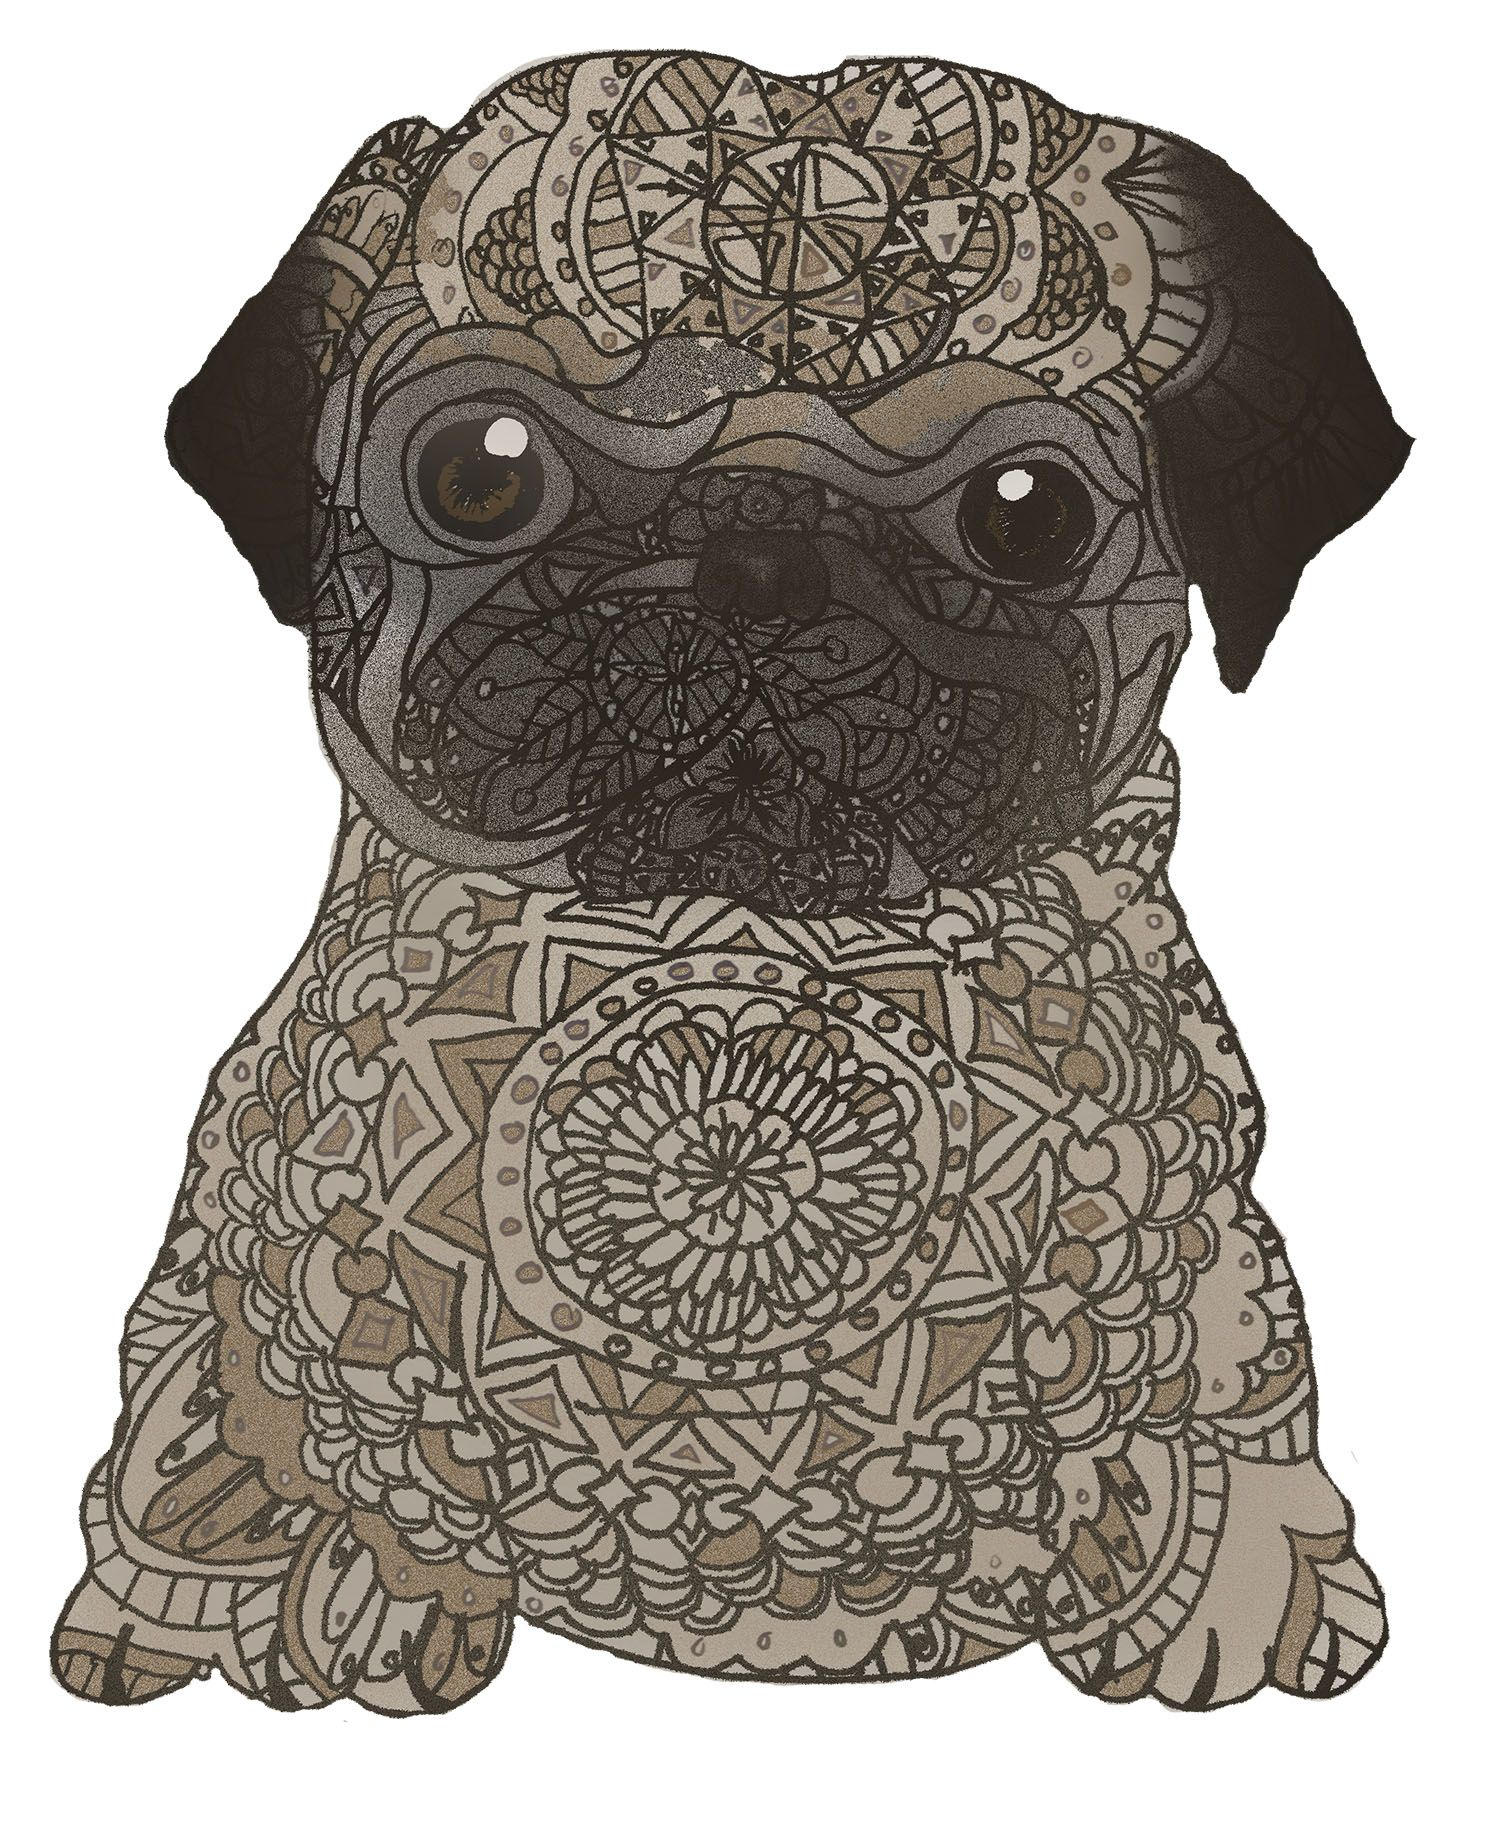 Pugala Pug Drawing Puppy Dog Cute Animal Mandala Nsvtwork